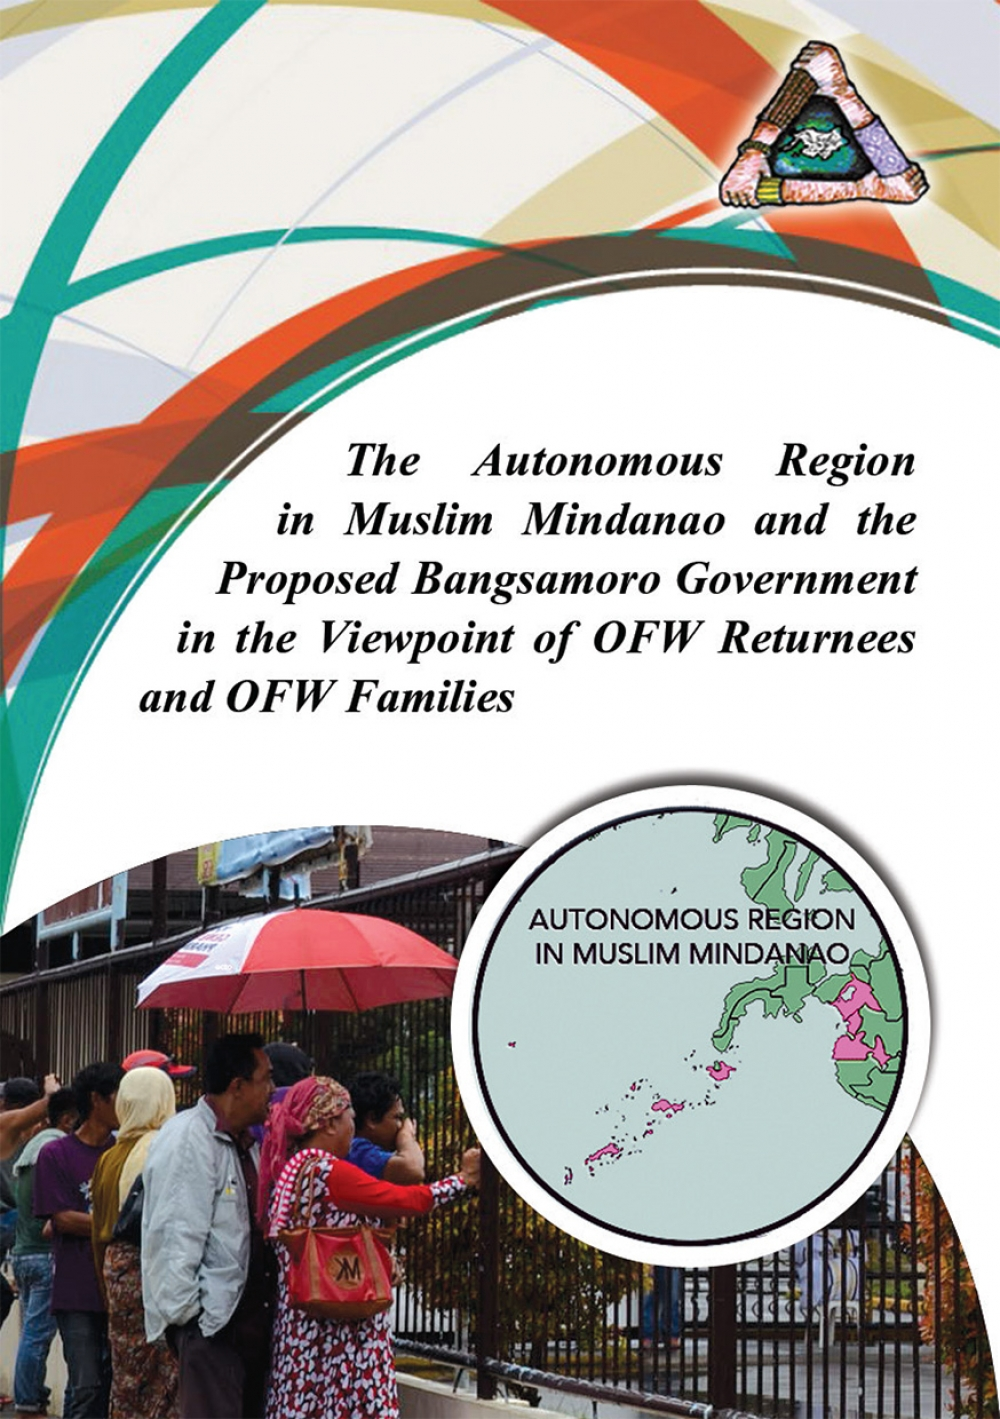 The Autonomous Region in Muslim Mindanao and the Proposed Bangsamoro Government in the Viewpoint of OFW Returnees and OFW Families